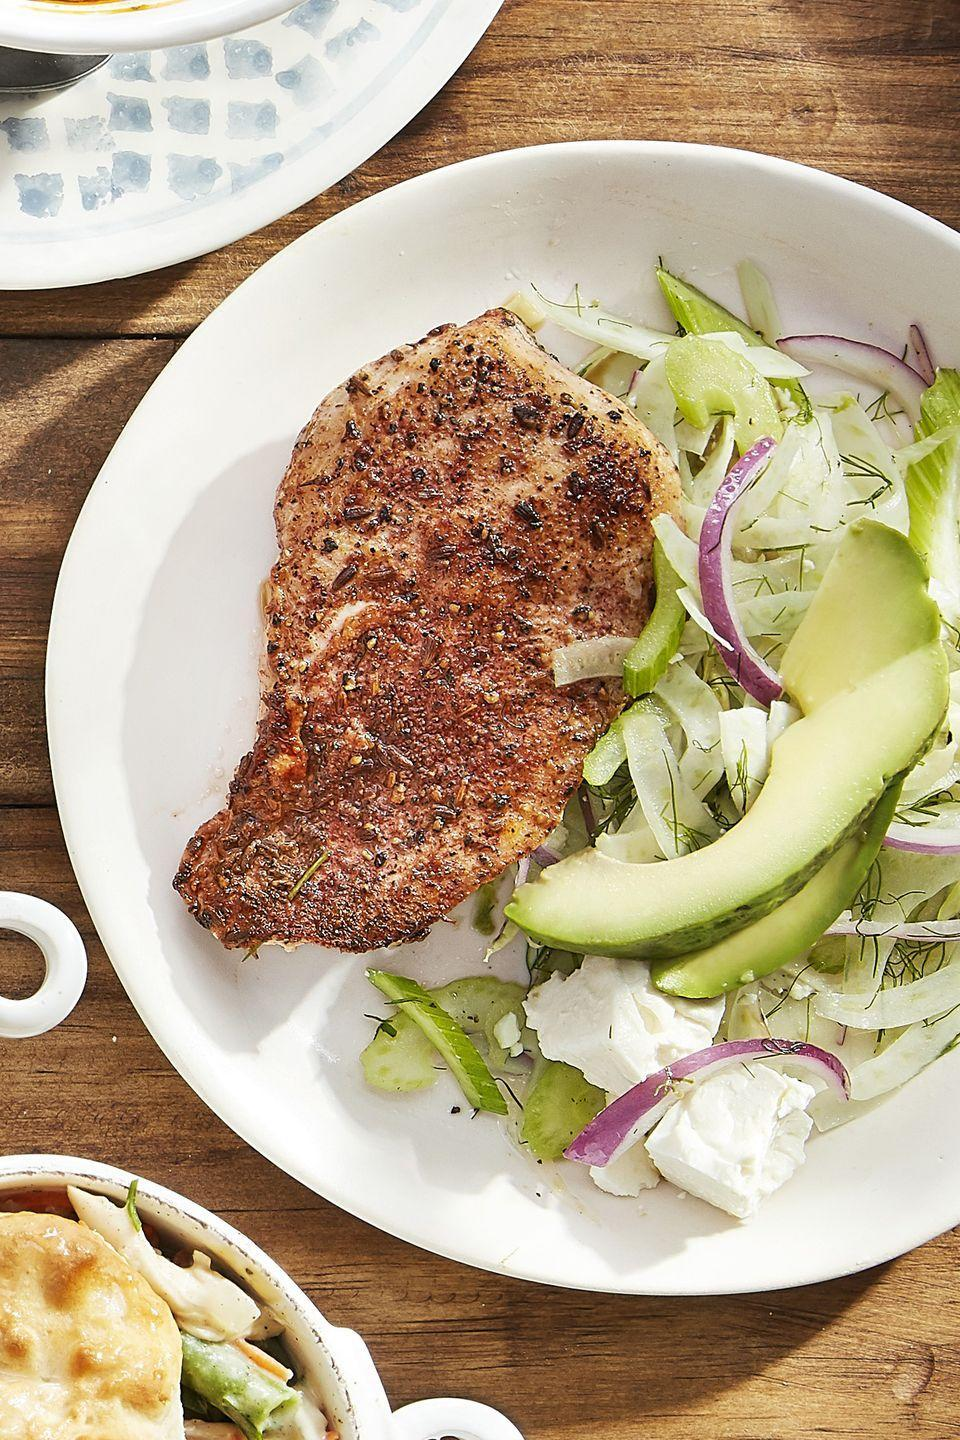 """<p>An avocado, fennel, and onion slaw elevates a crispy chicken dinner.</p><p><strong><a href=""""https://www.countryliving.com/food-drinks/recipes/a44250/blackened-chicken-fennel-slaw-recipe/"""" rel=""""nofollow noopener"""" target=""""_blank"""" data-ylk=""""slk:Get the recipe"""" class=""""link rapid-noclick-resp"""">Get the recipe</a>.</strong></p>"""